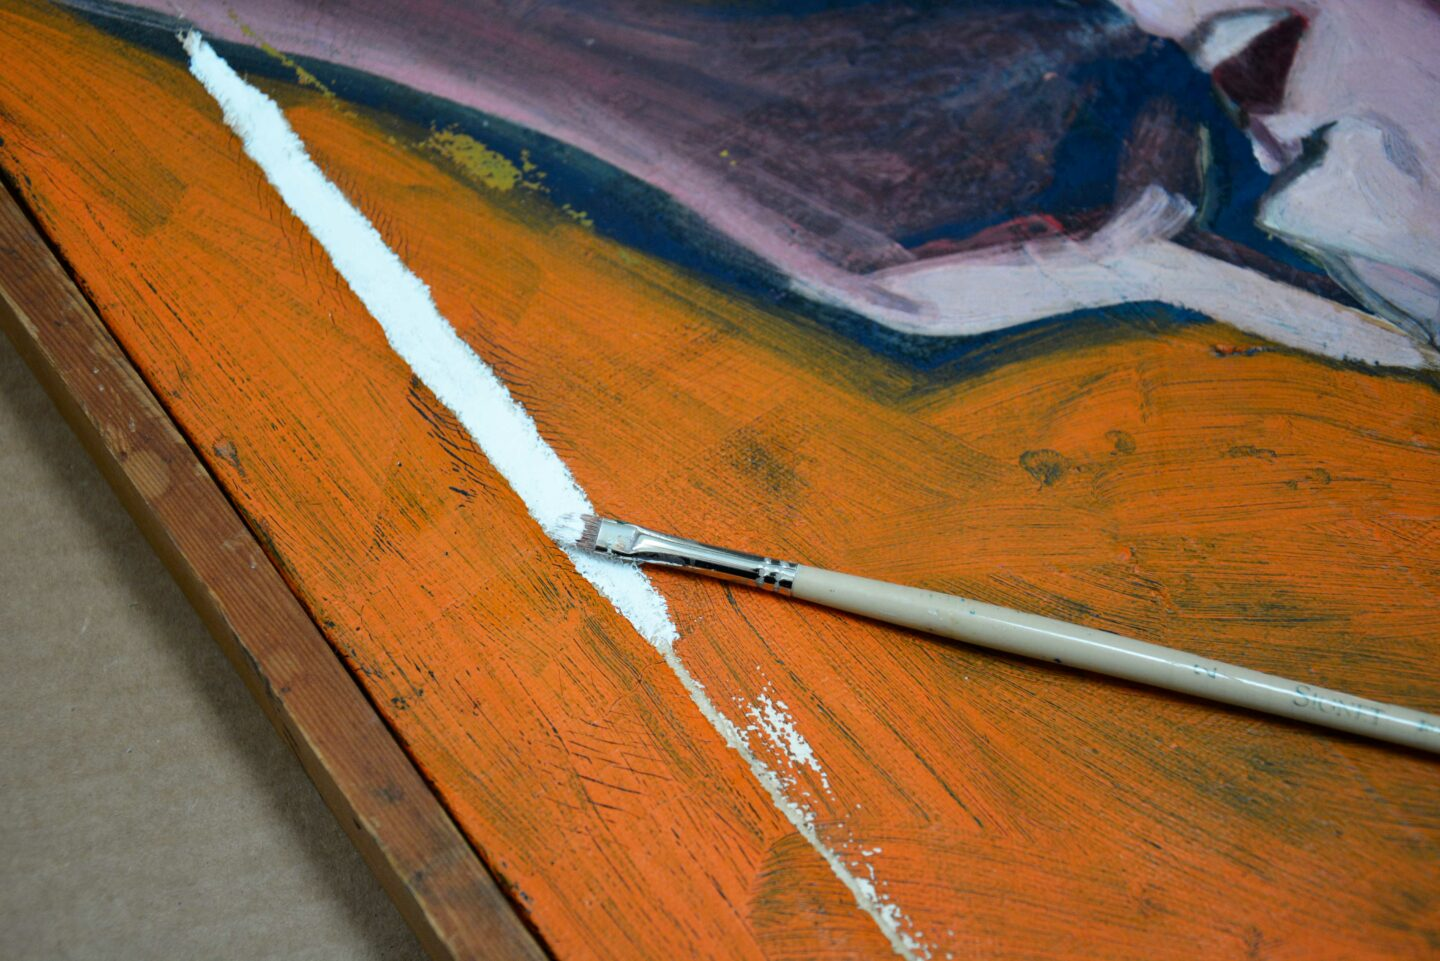 Using gesso to fill in a tear in damaged art.